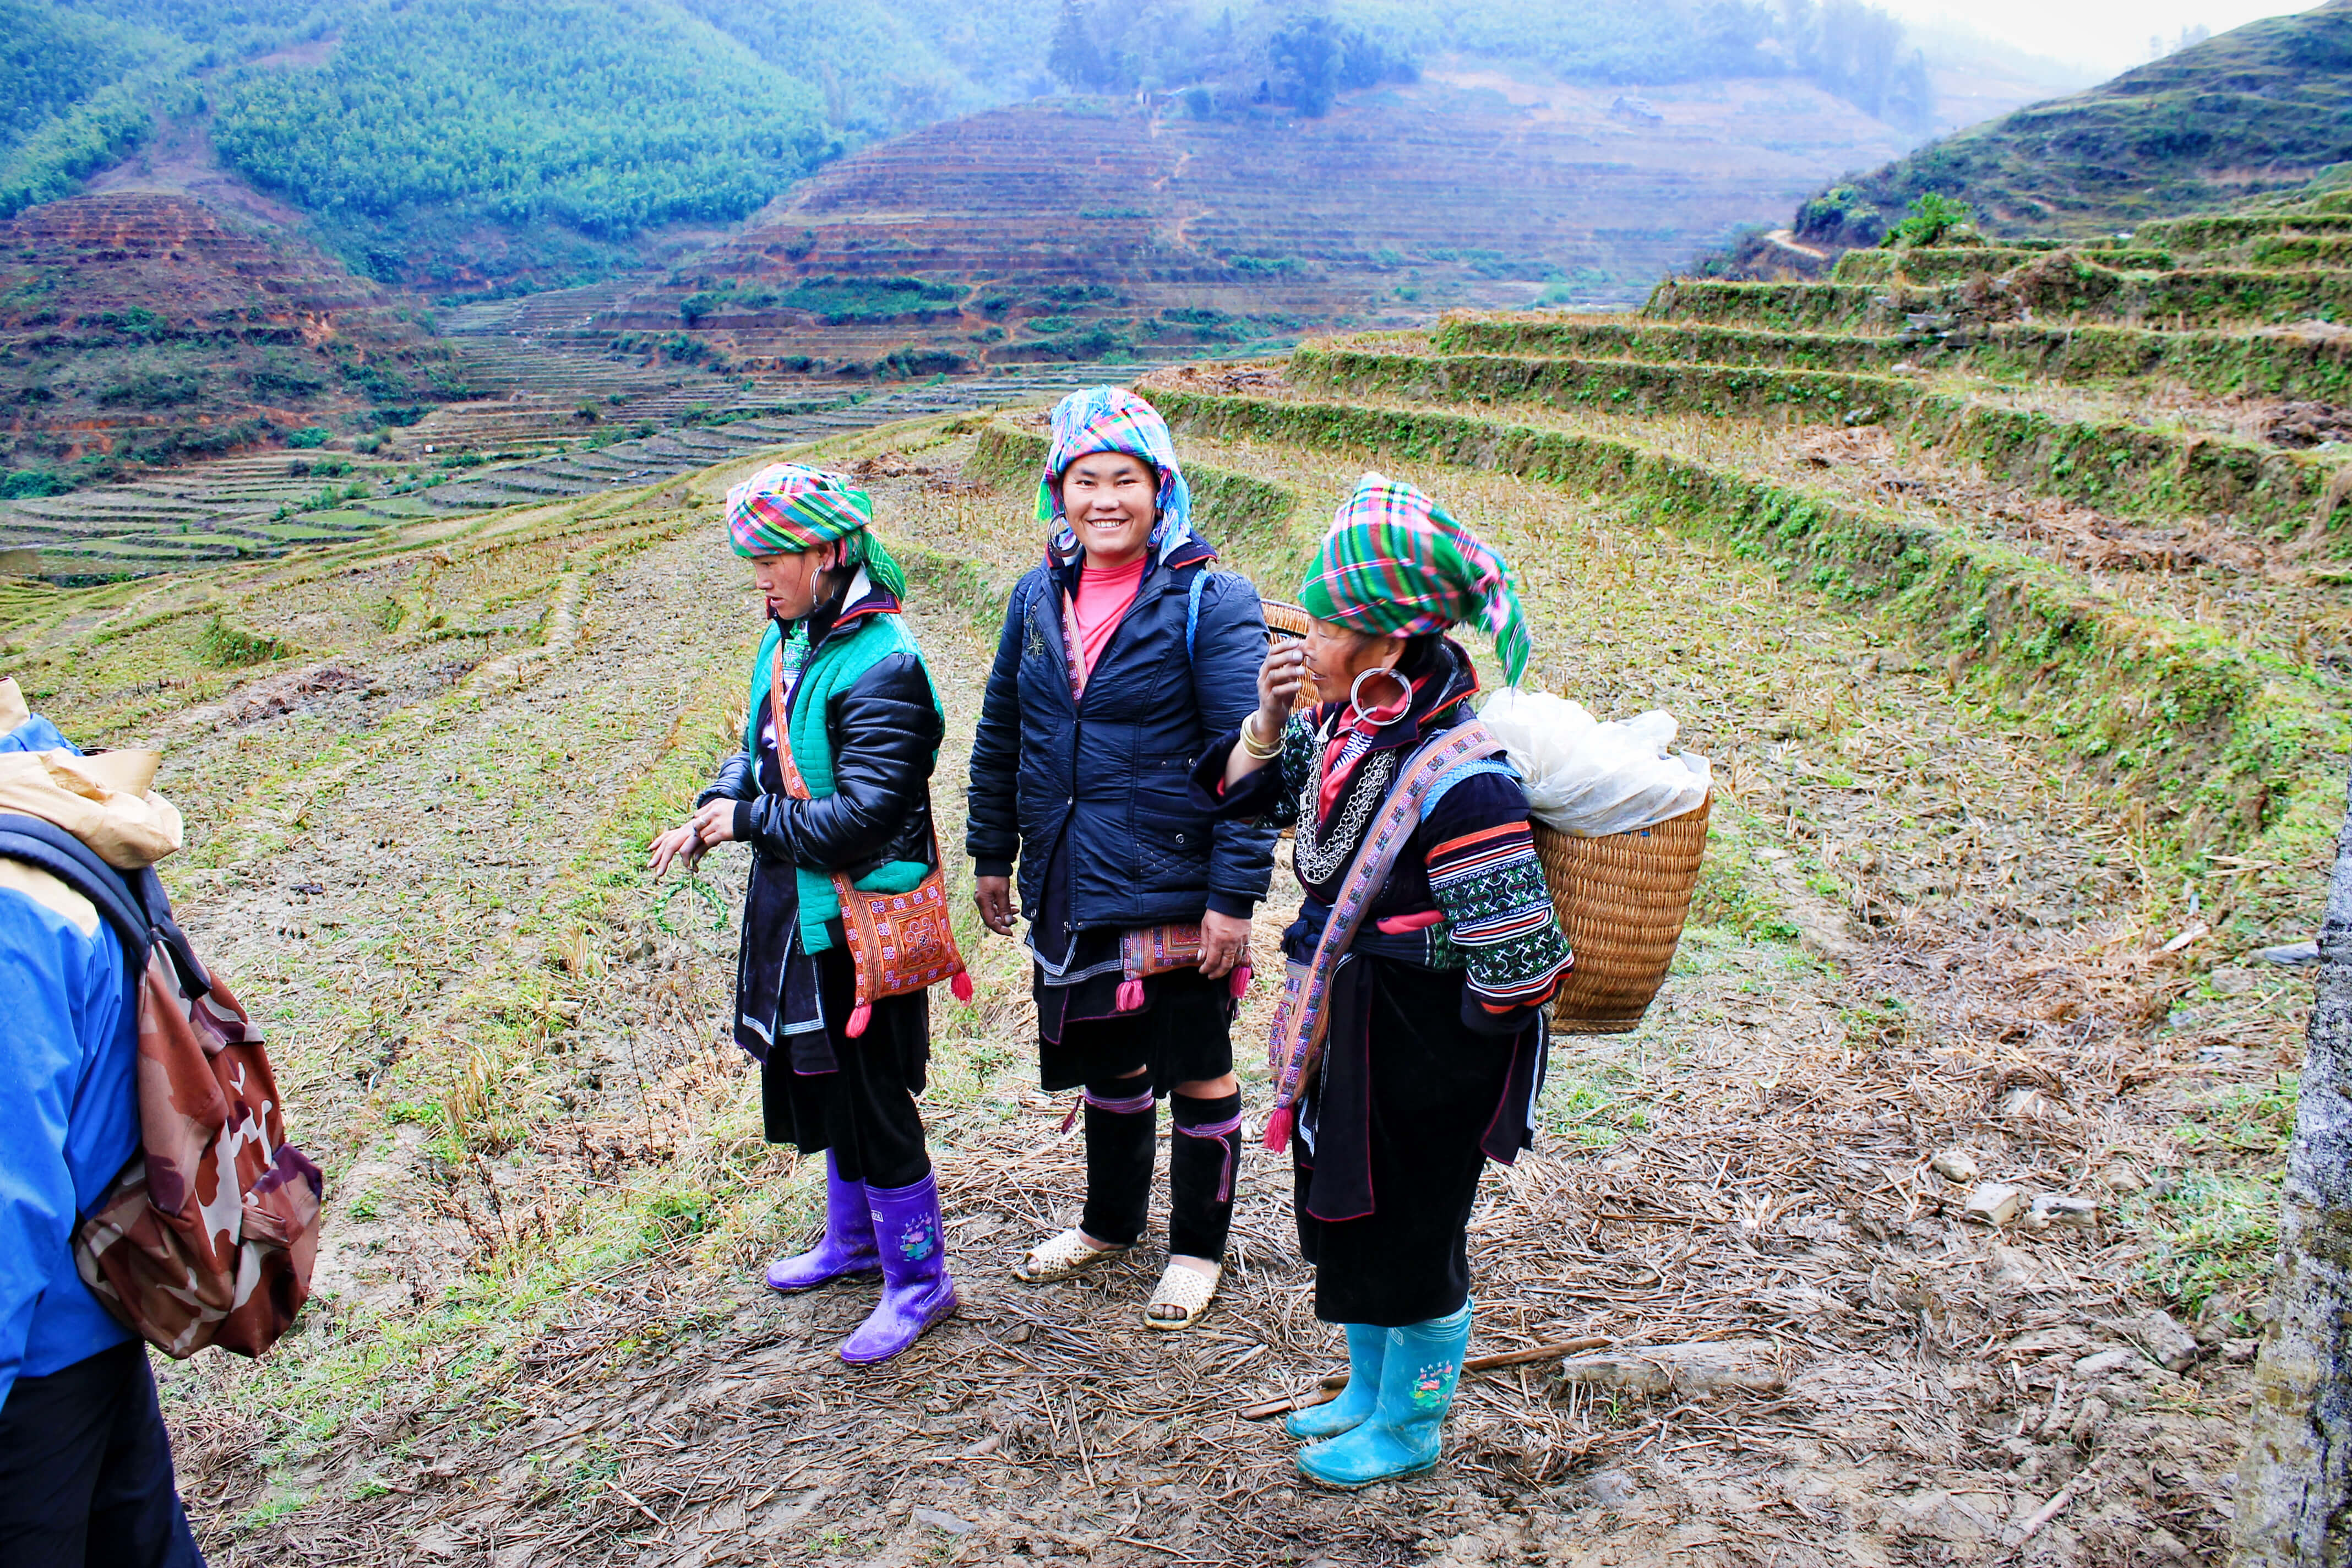 Locals in SaPa, Vietnam - It's a Food Life